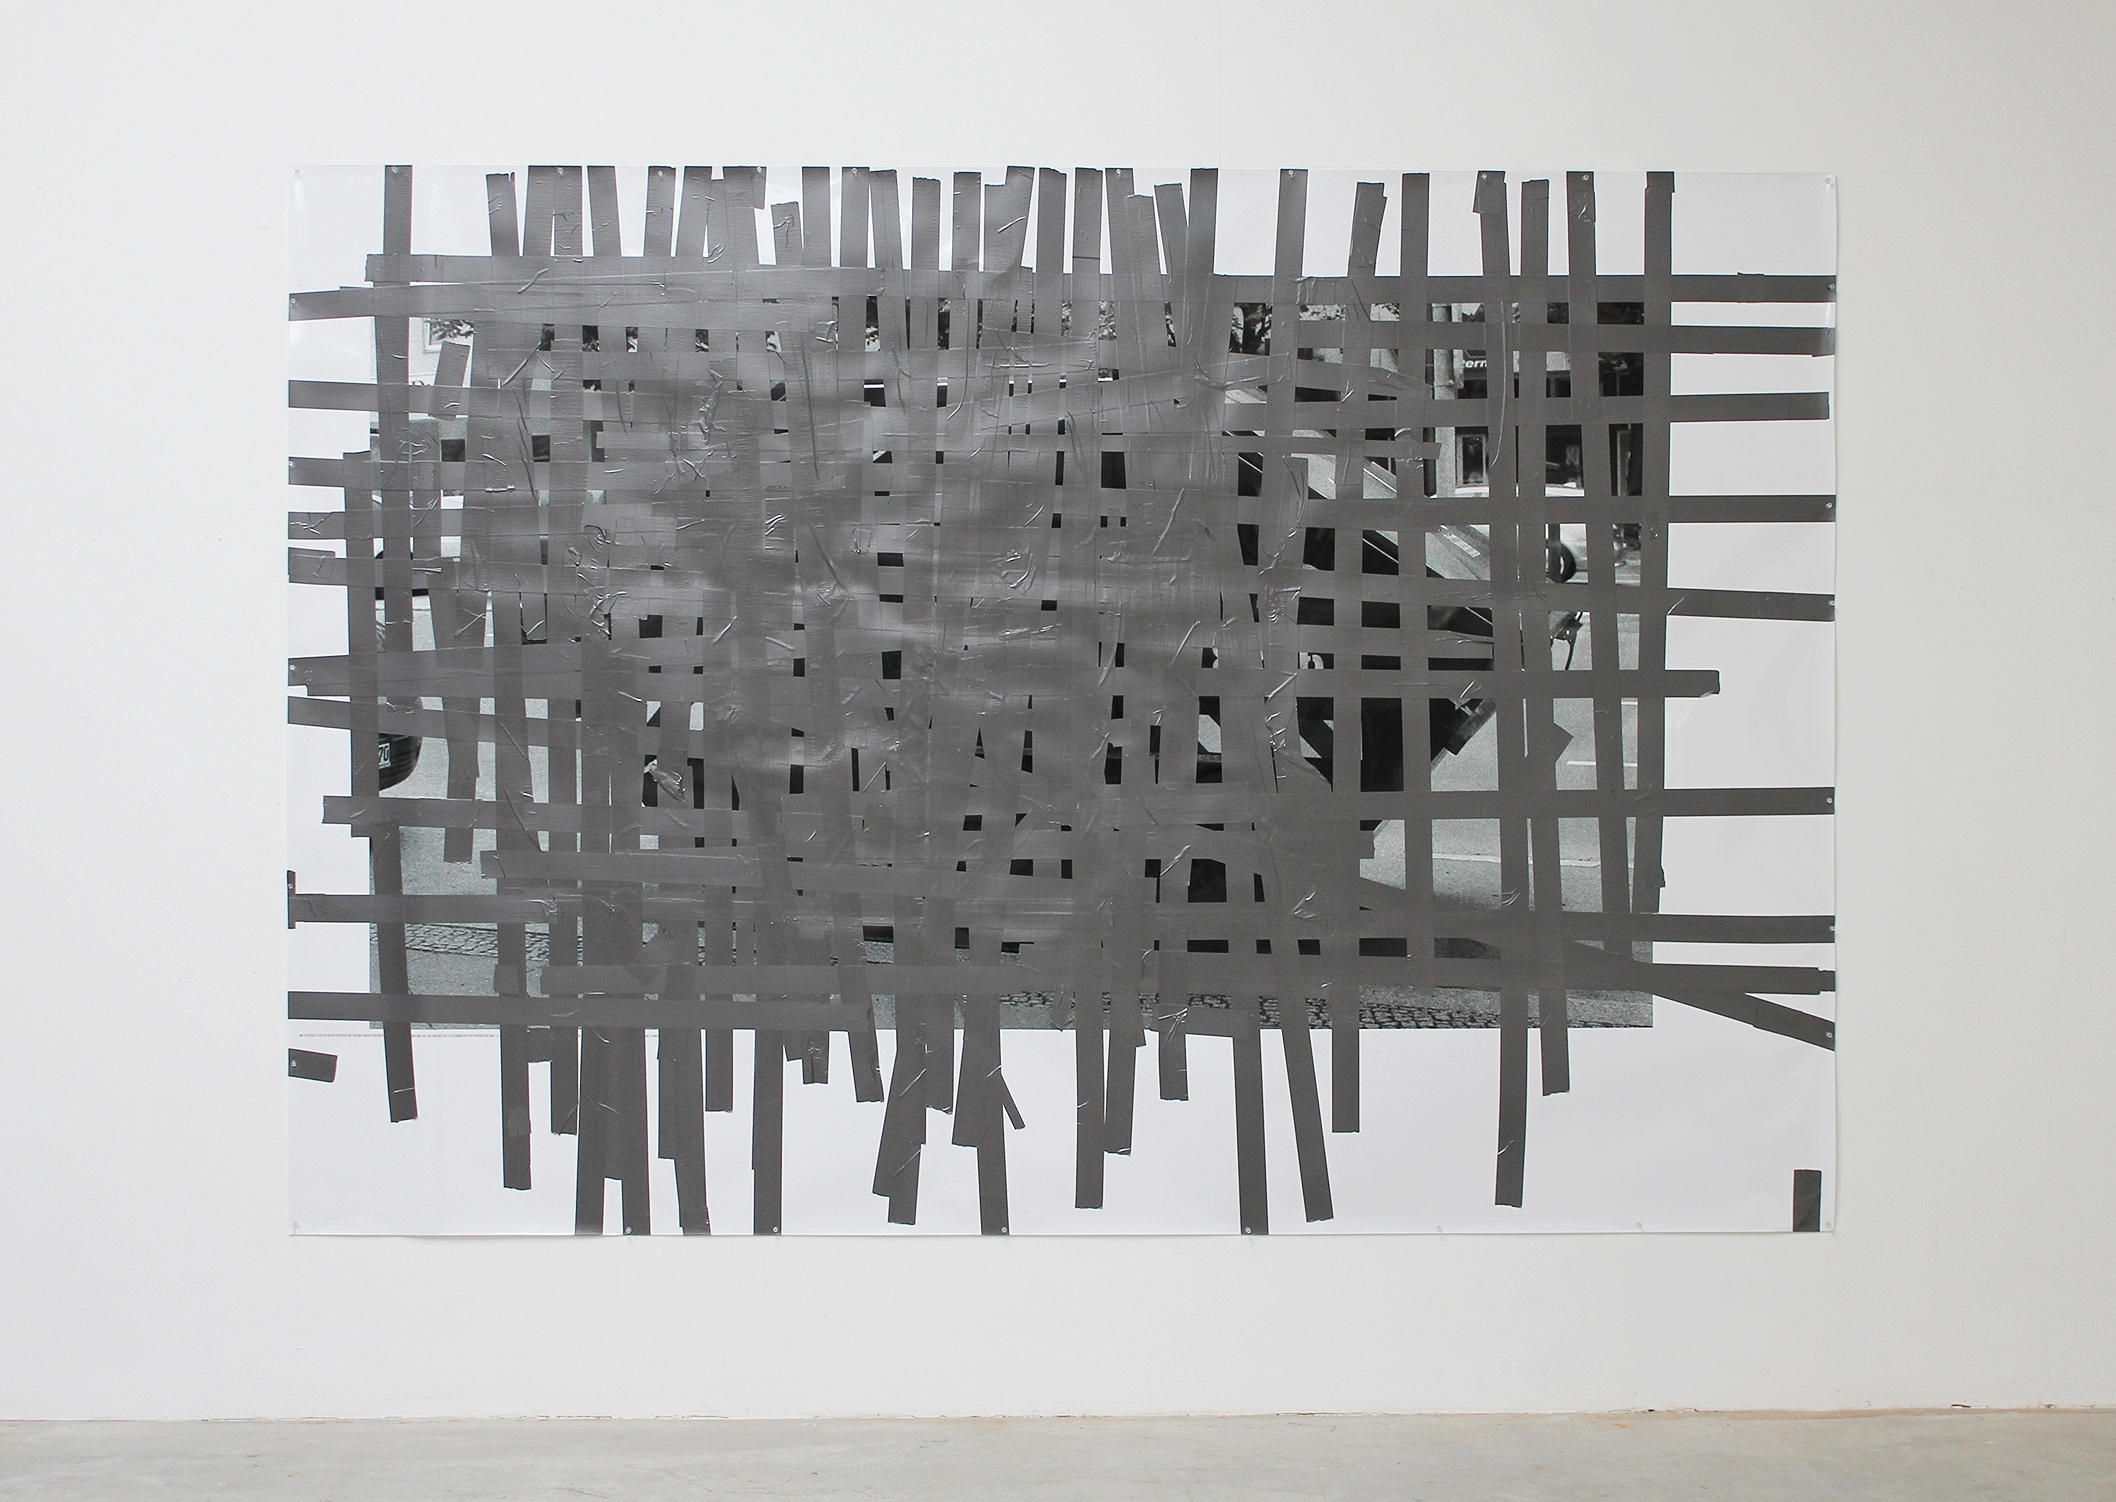 Tape Drawing (Berlin #2) 2013 72 x 104.25 inches